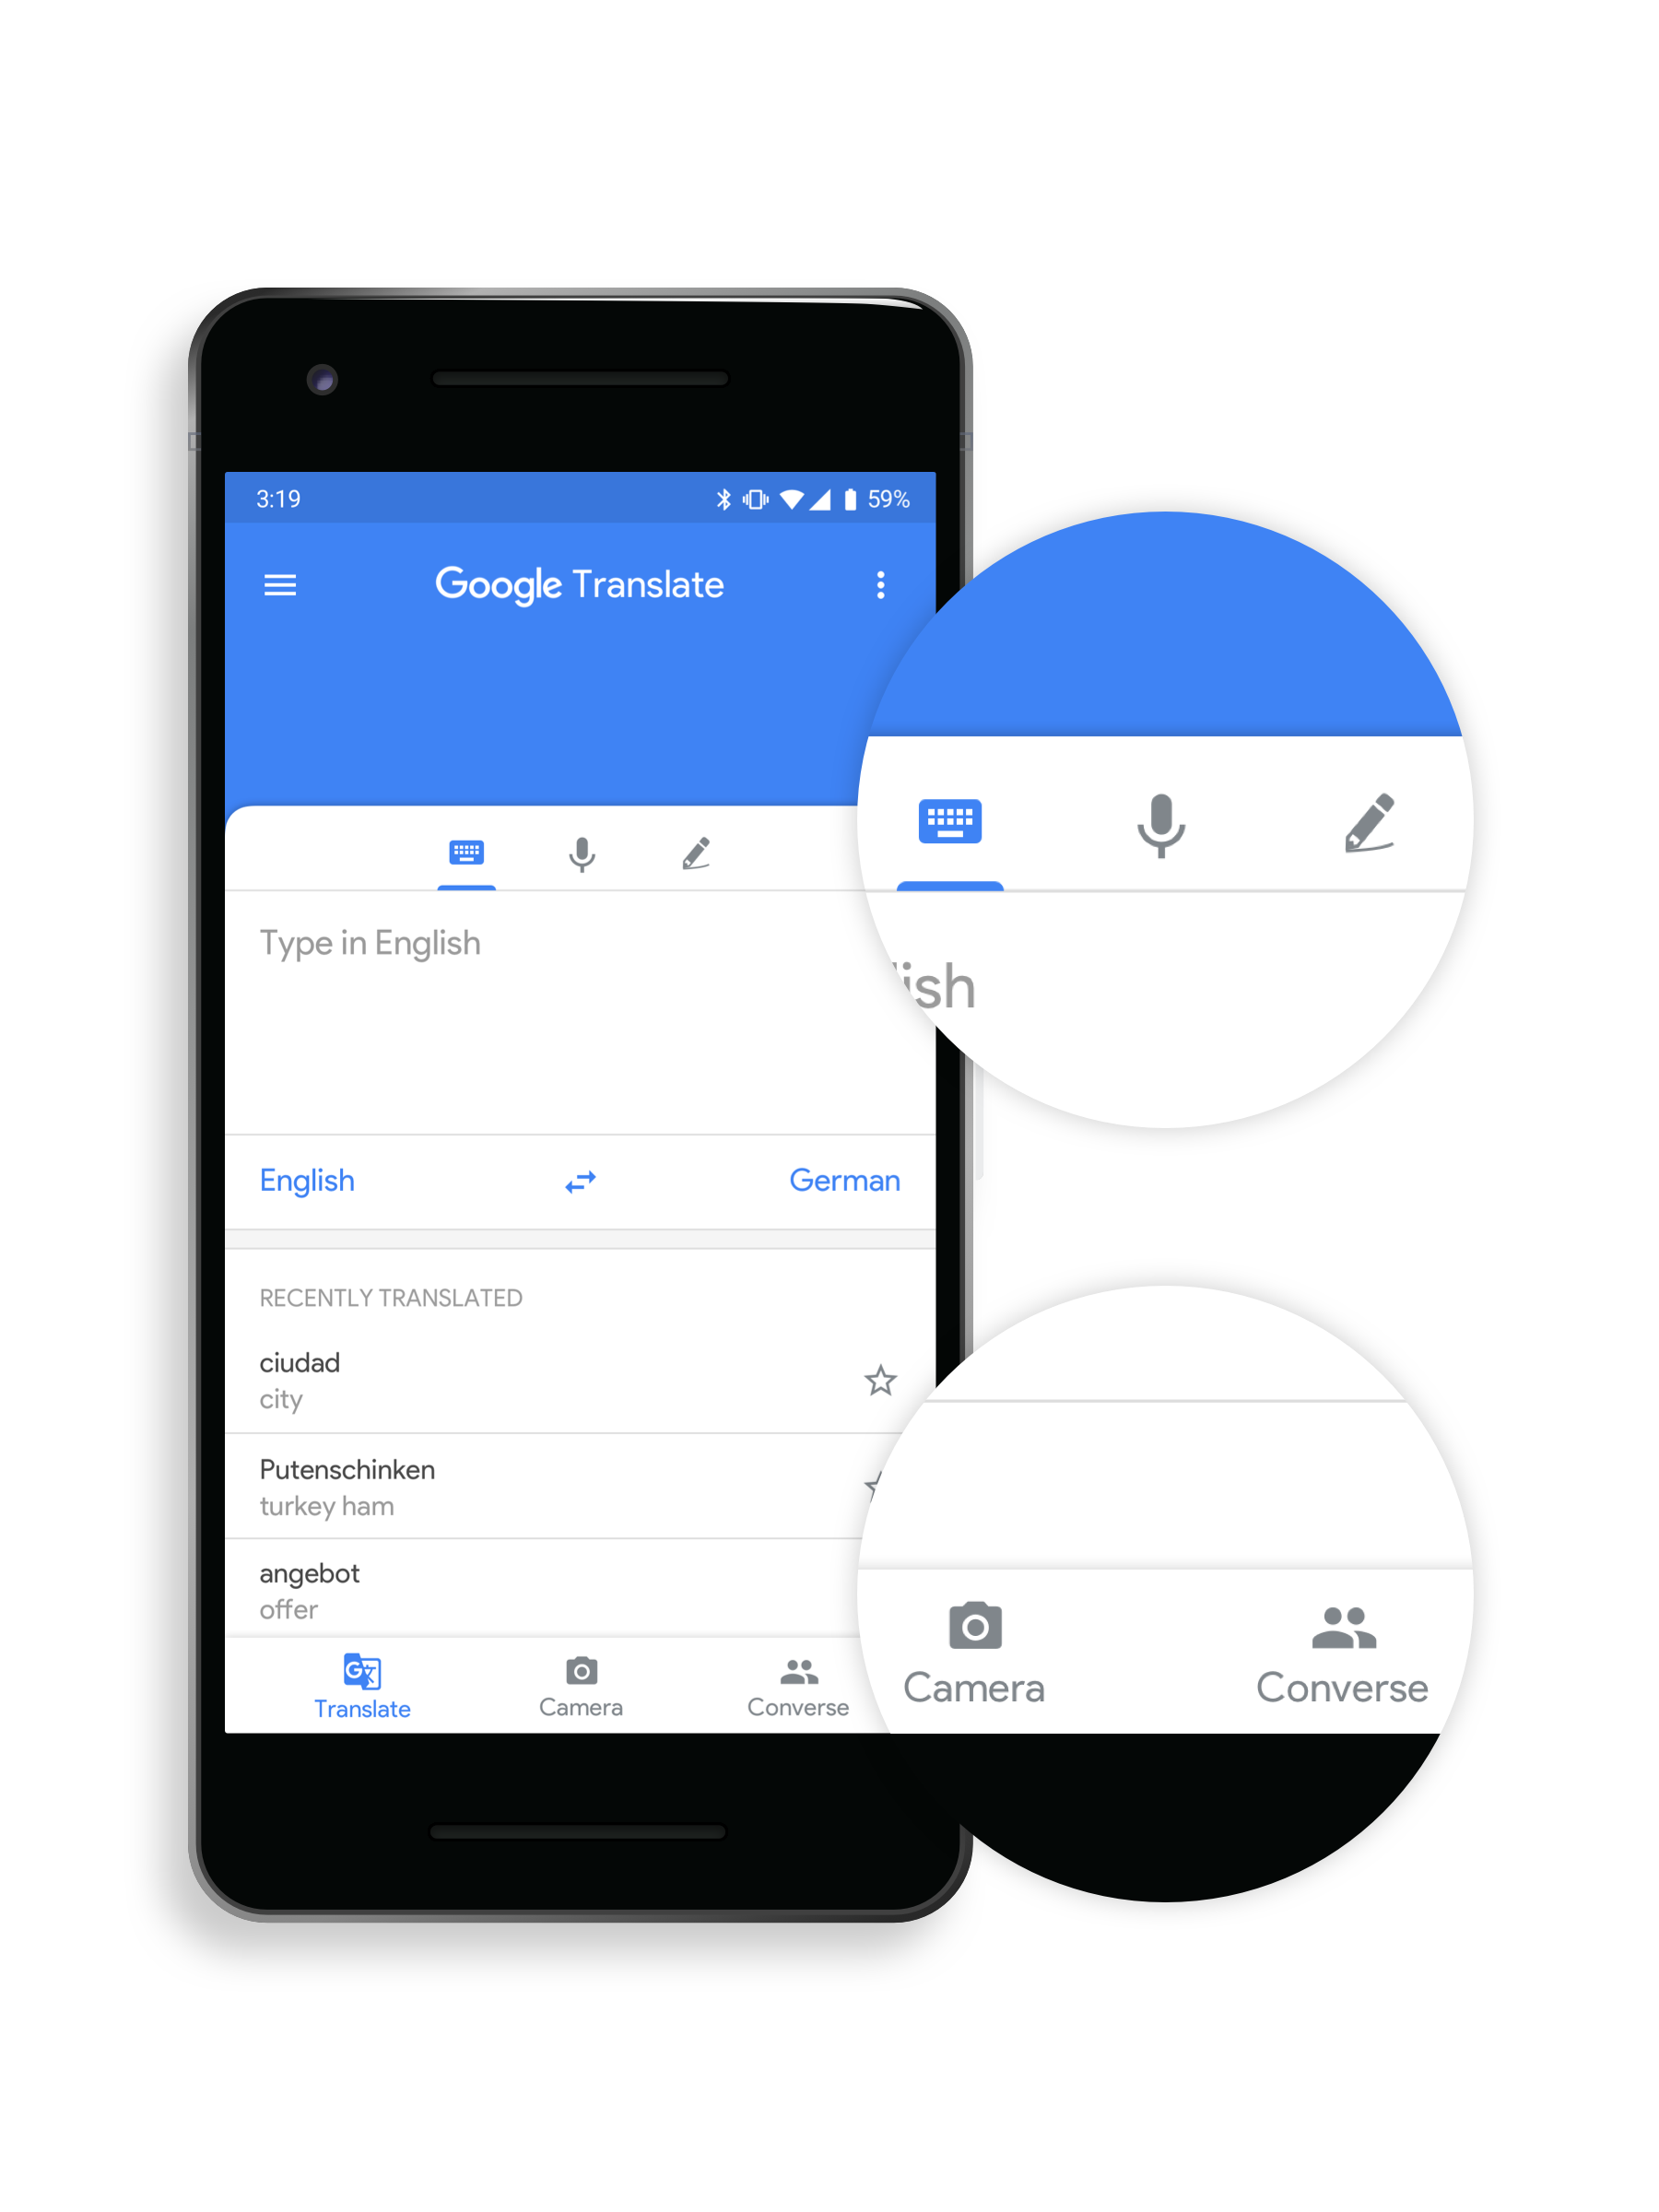 Rethinking Google Translate — a UX case study - UX Collective